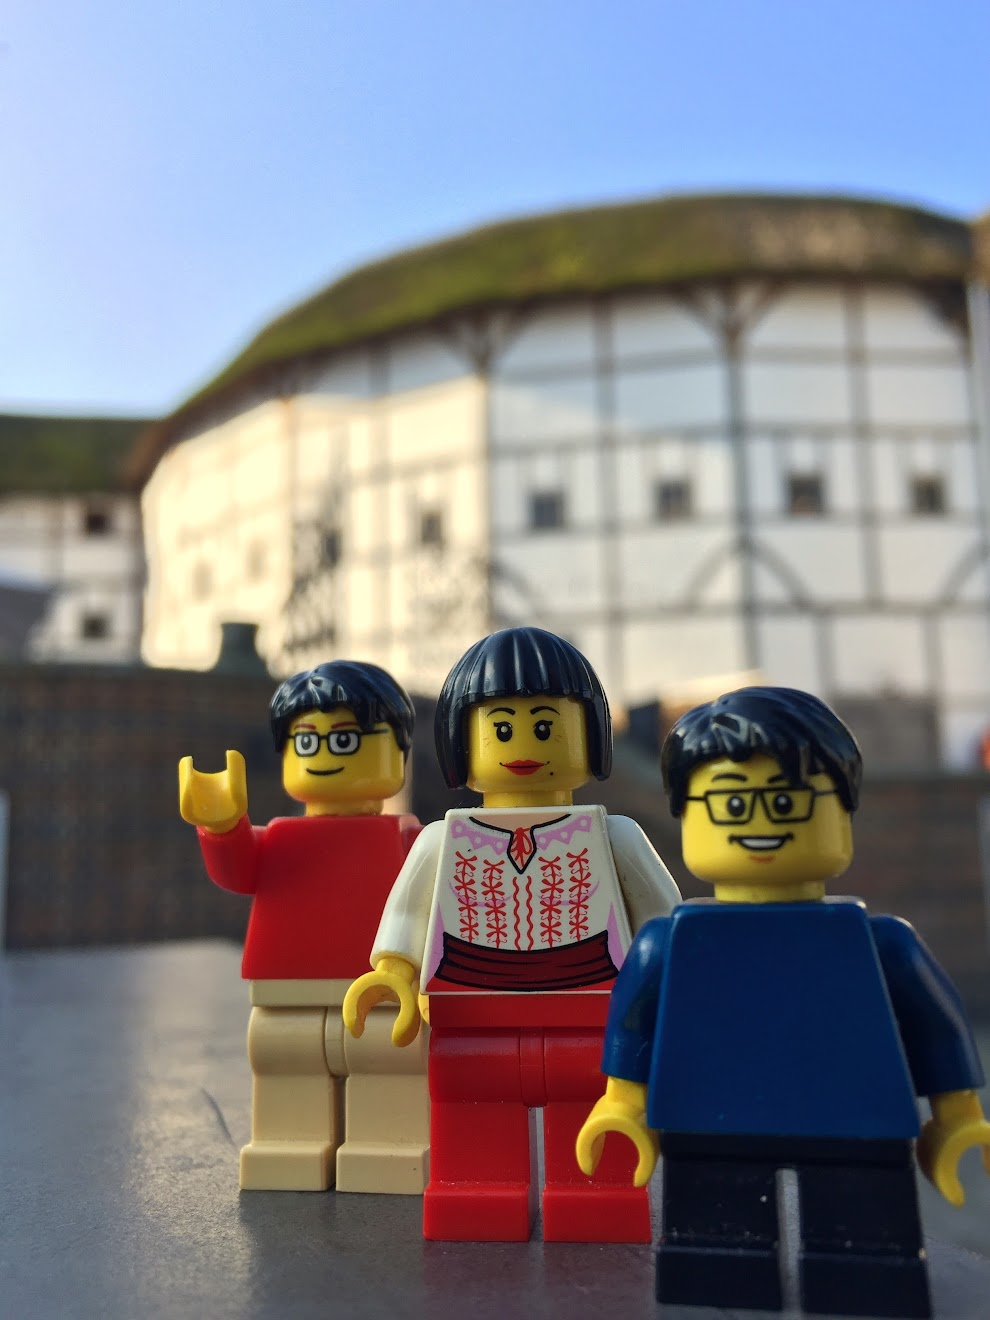 Lego family visits Shakespeare's Globe.